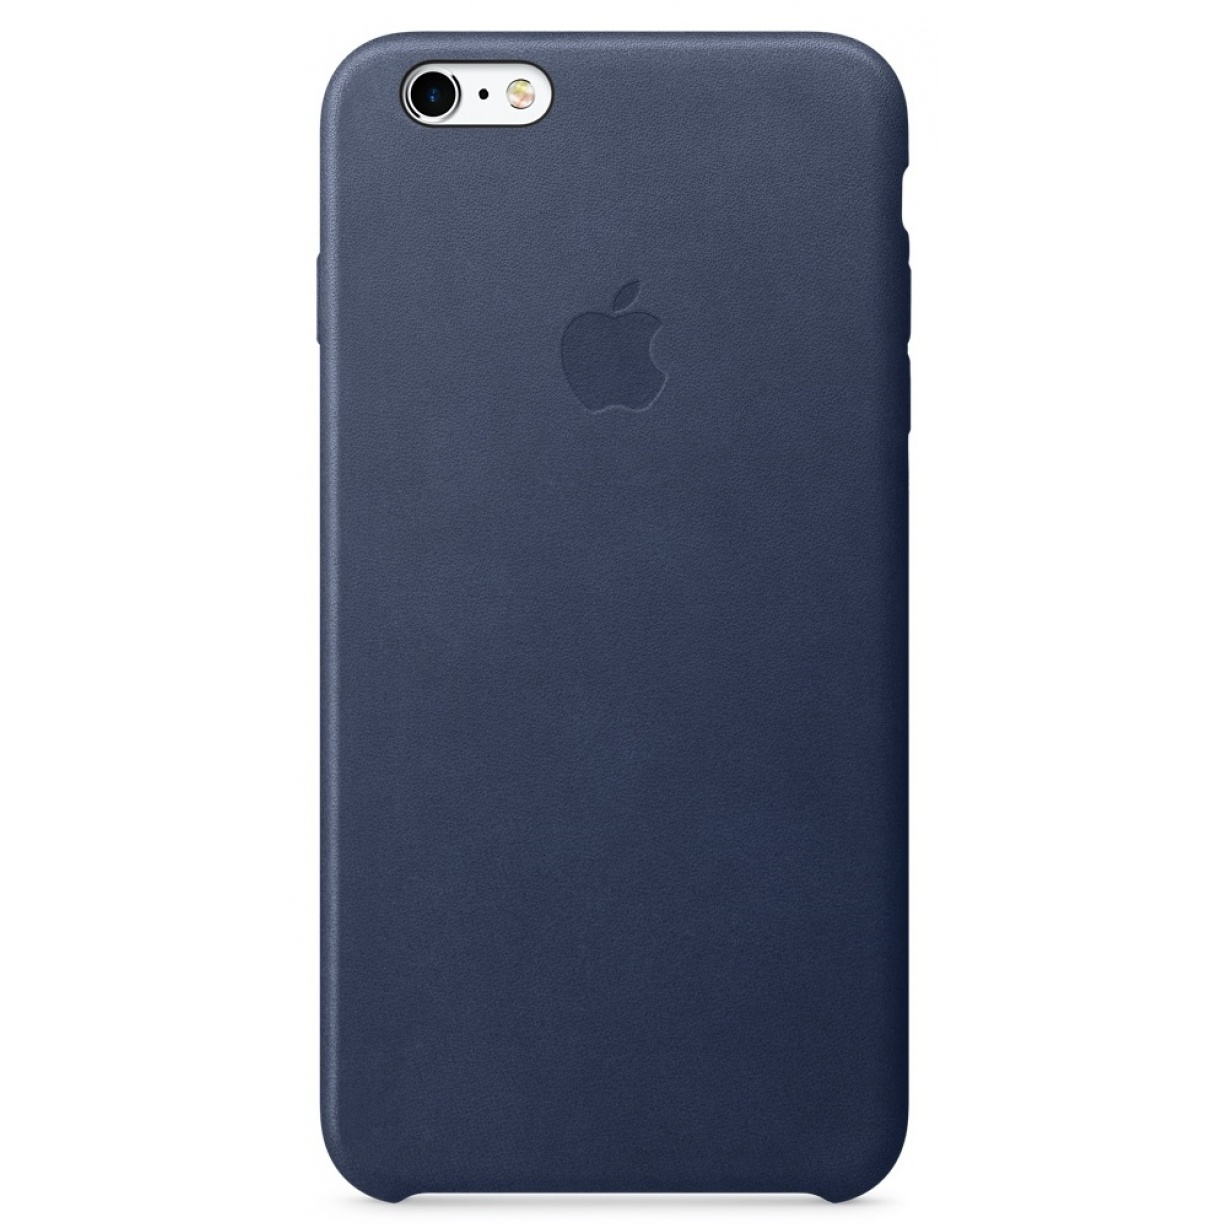 Nugarėlė Apple iPhone 6 Plus/6s Plus Leather Case Midnight blue